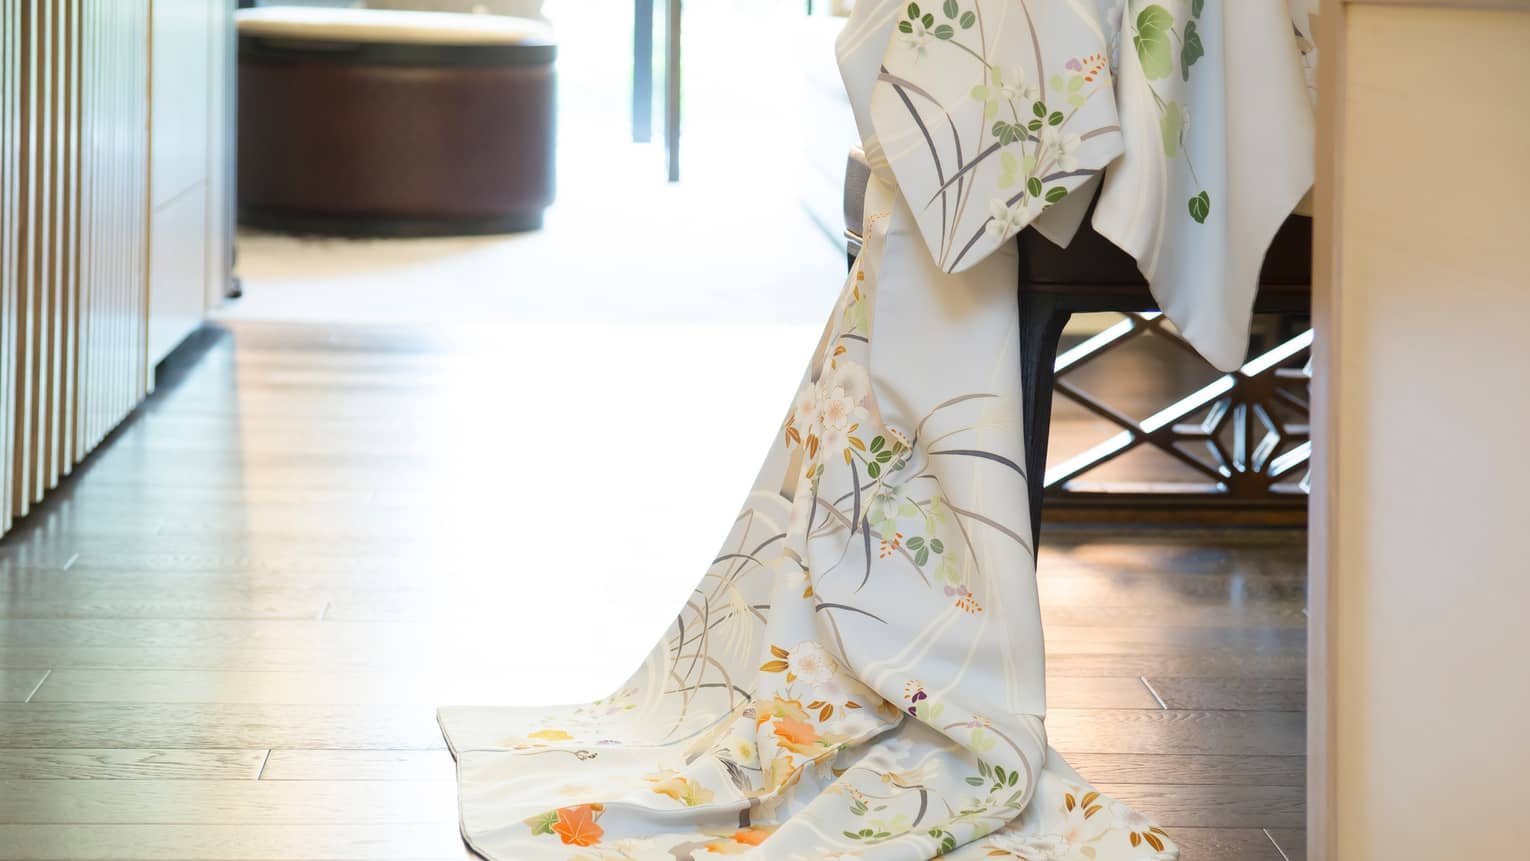 Close-up of kimono robe with floral print hanging over side of chair